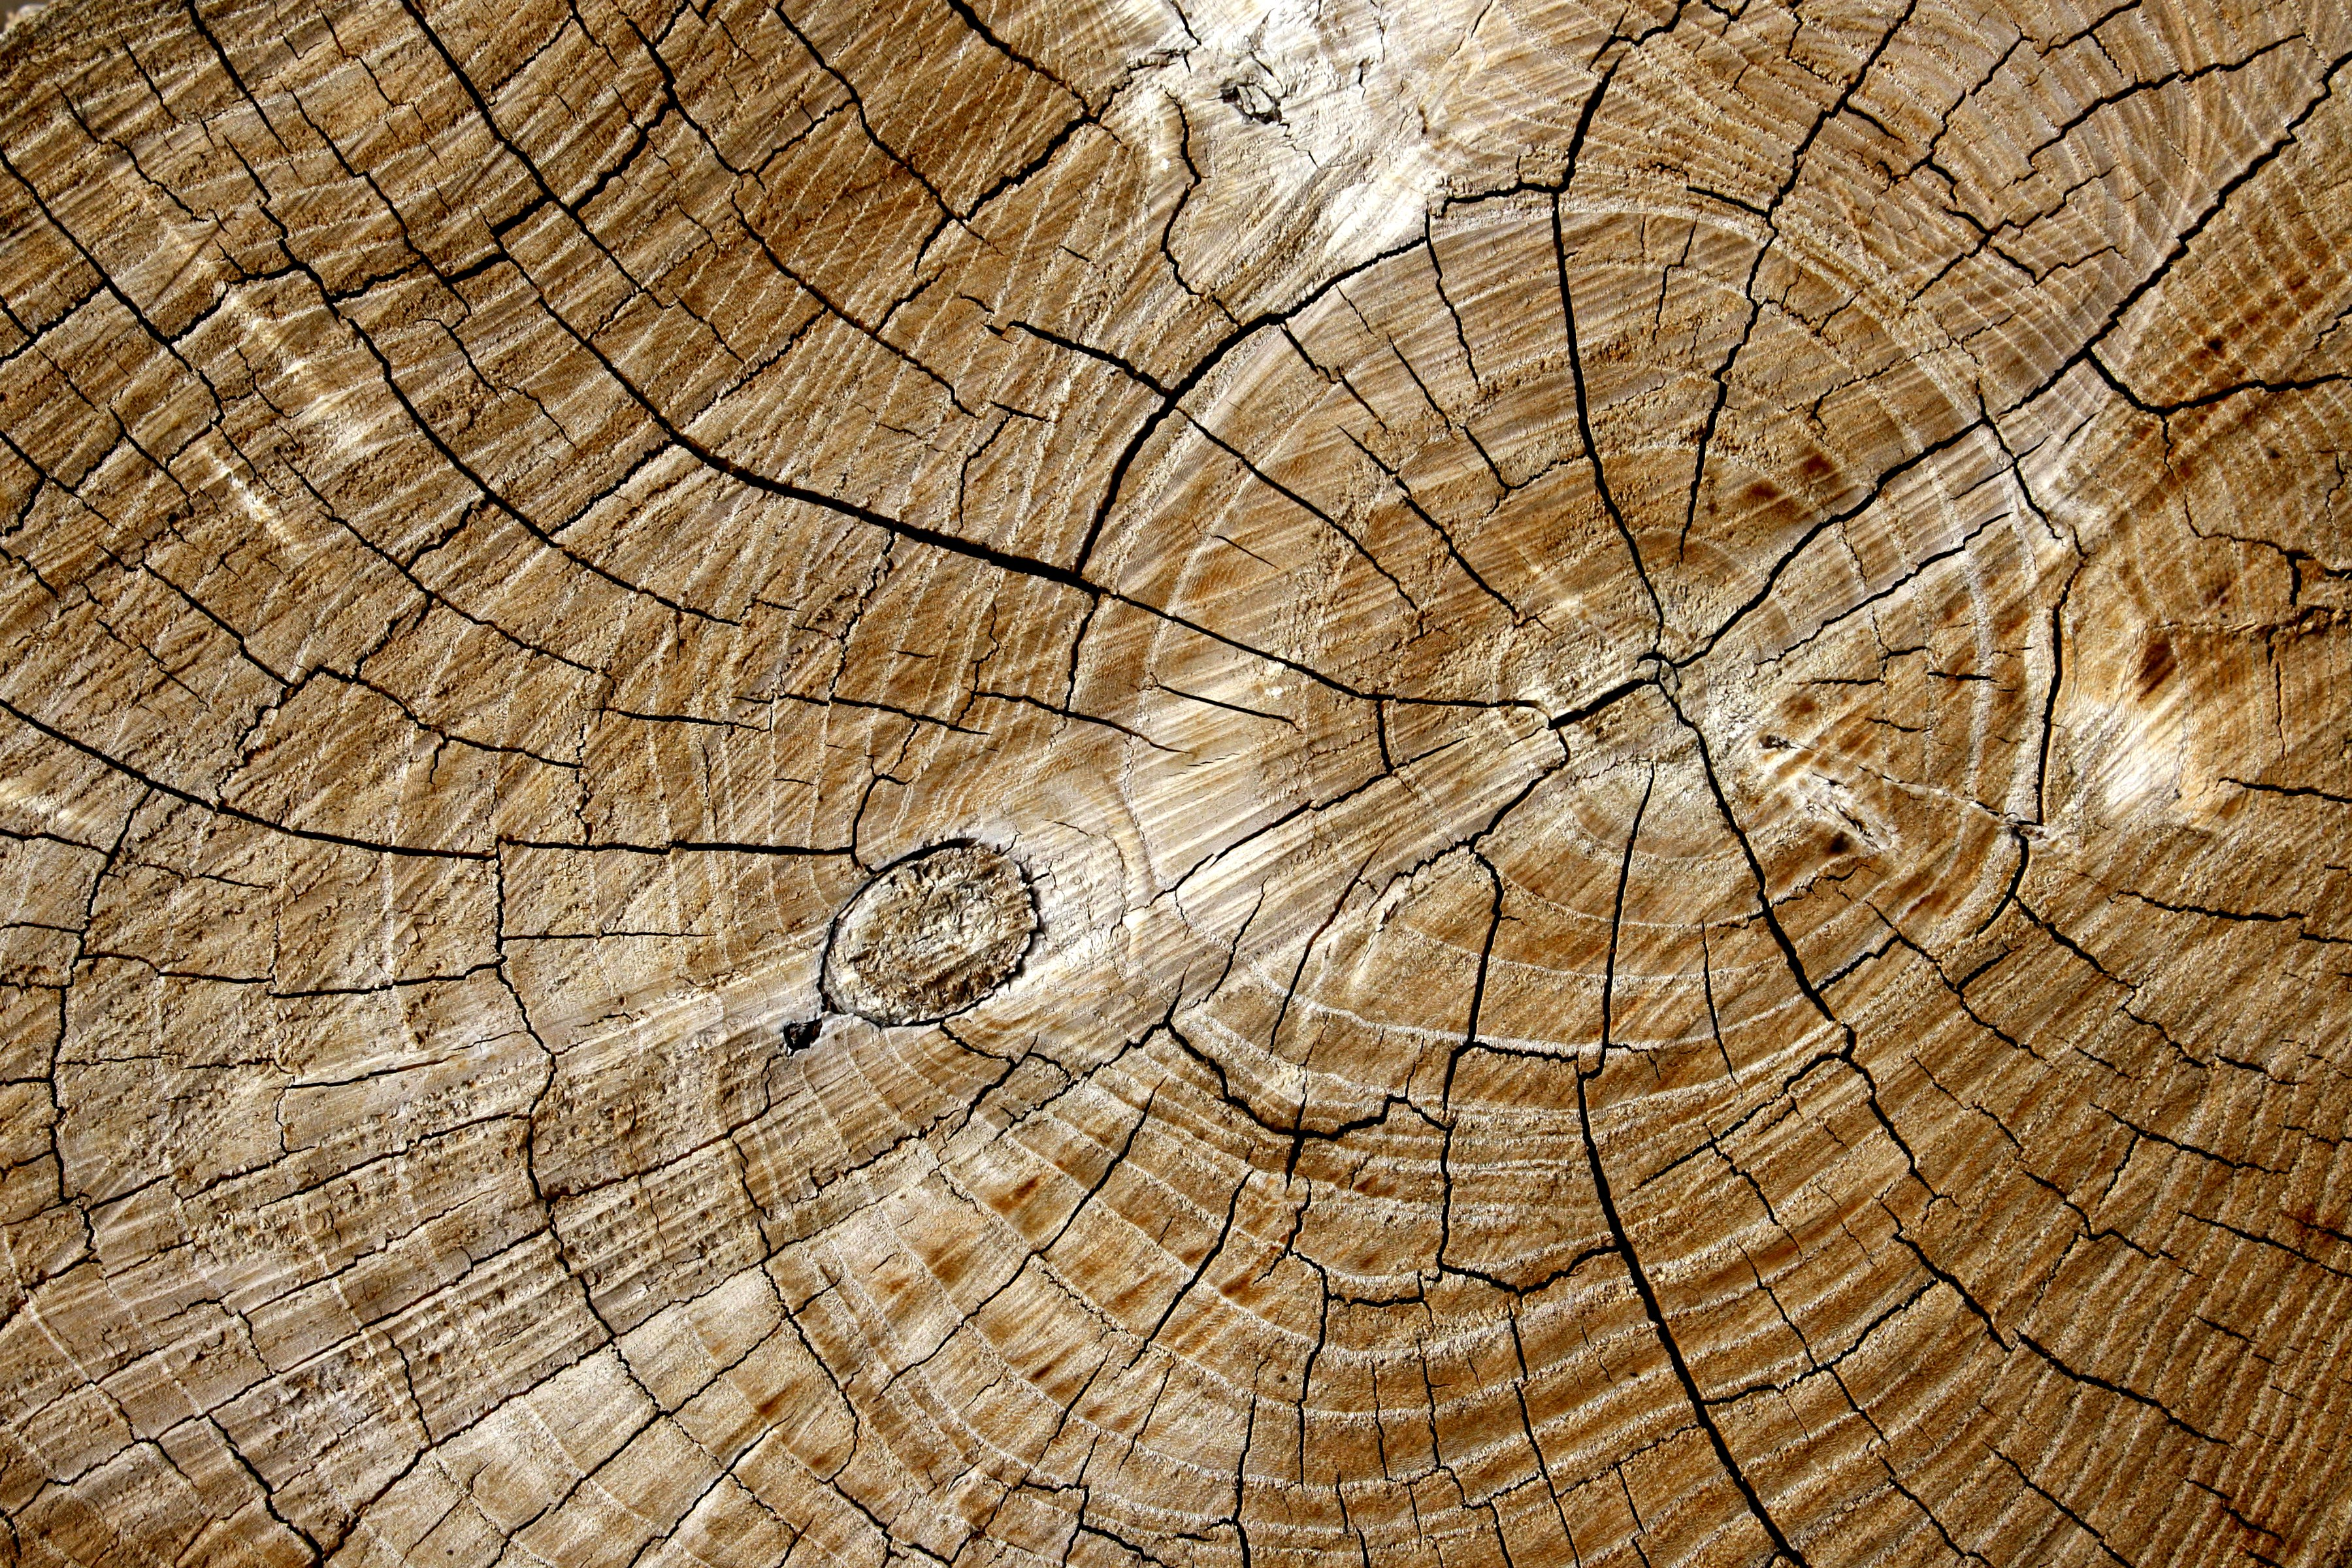 Cut End of Log with Tree Rings Texture - Free High Resolution Photo ...